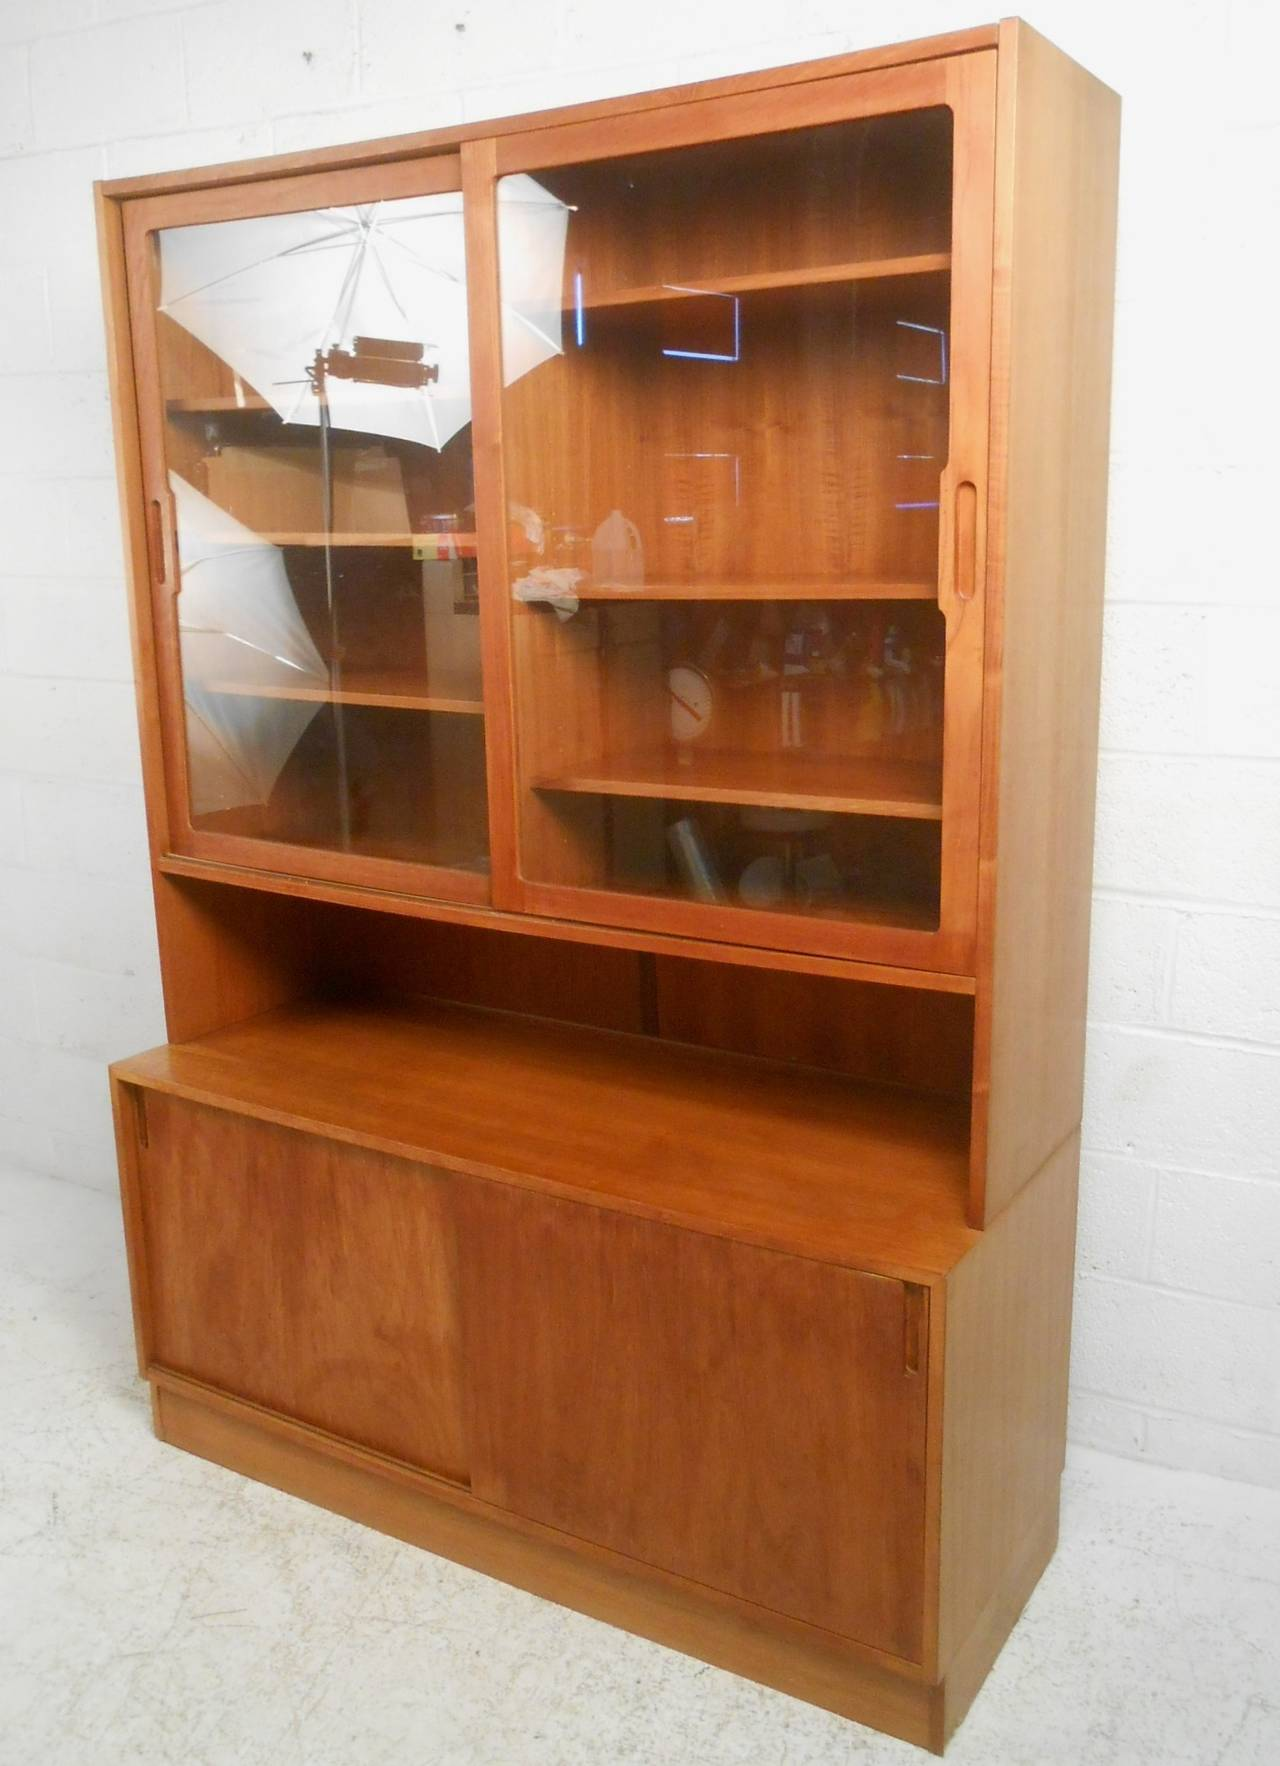 This Beautiful Danish Teak Cabinet Makes A Stylish Storage Option For Any  Room. Spacious Glass